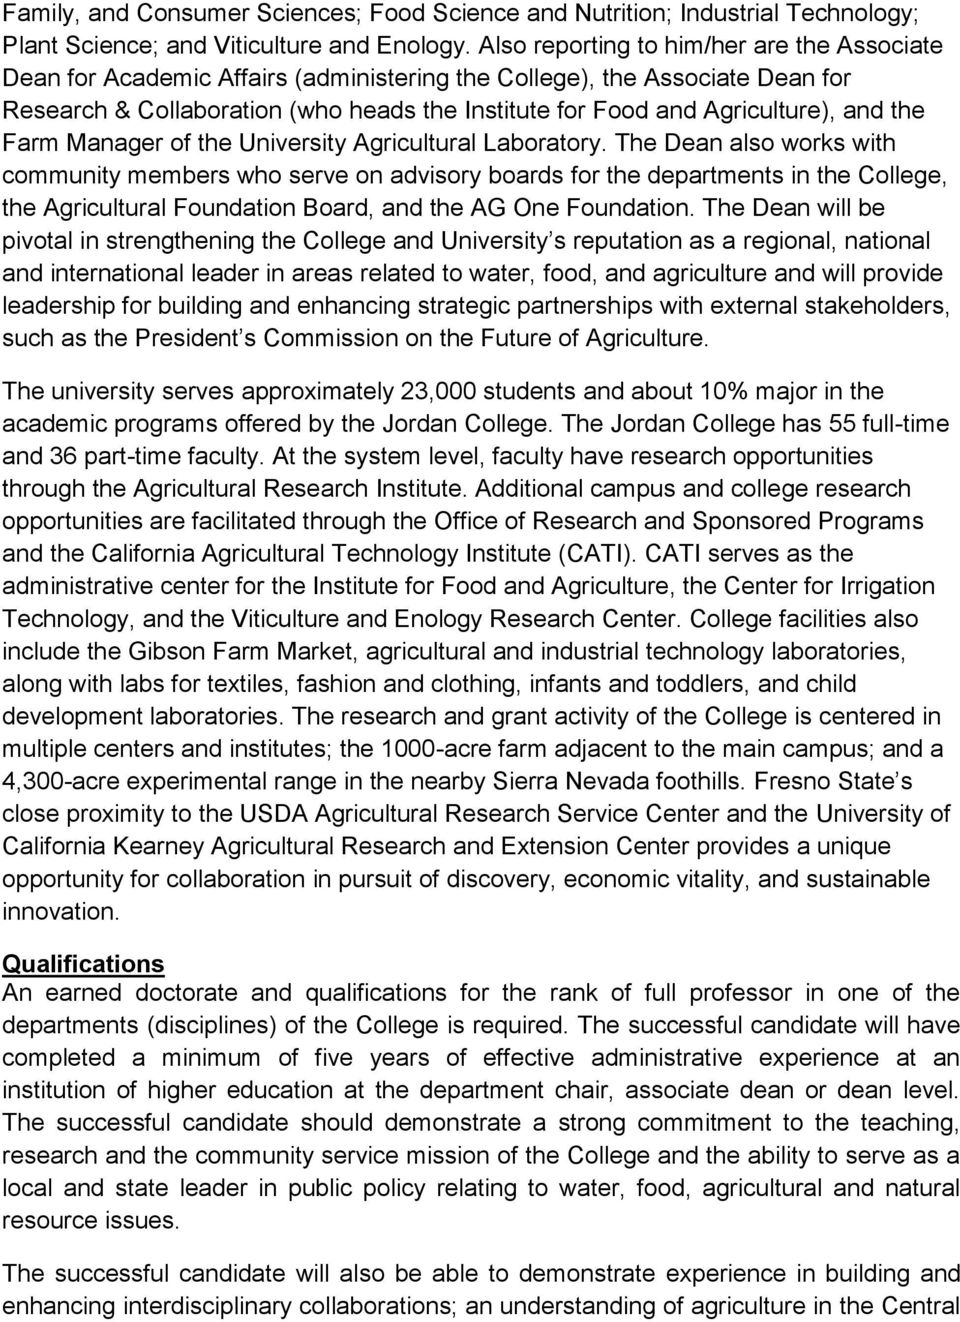 and the Farm Manager of the University Agricultural Laboratory.